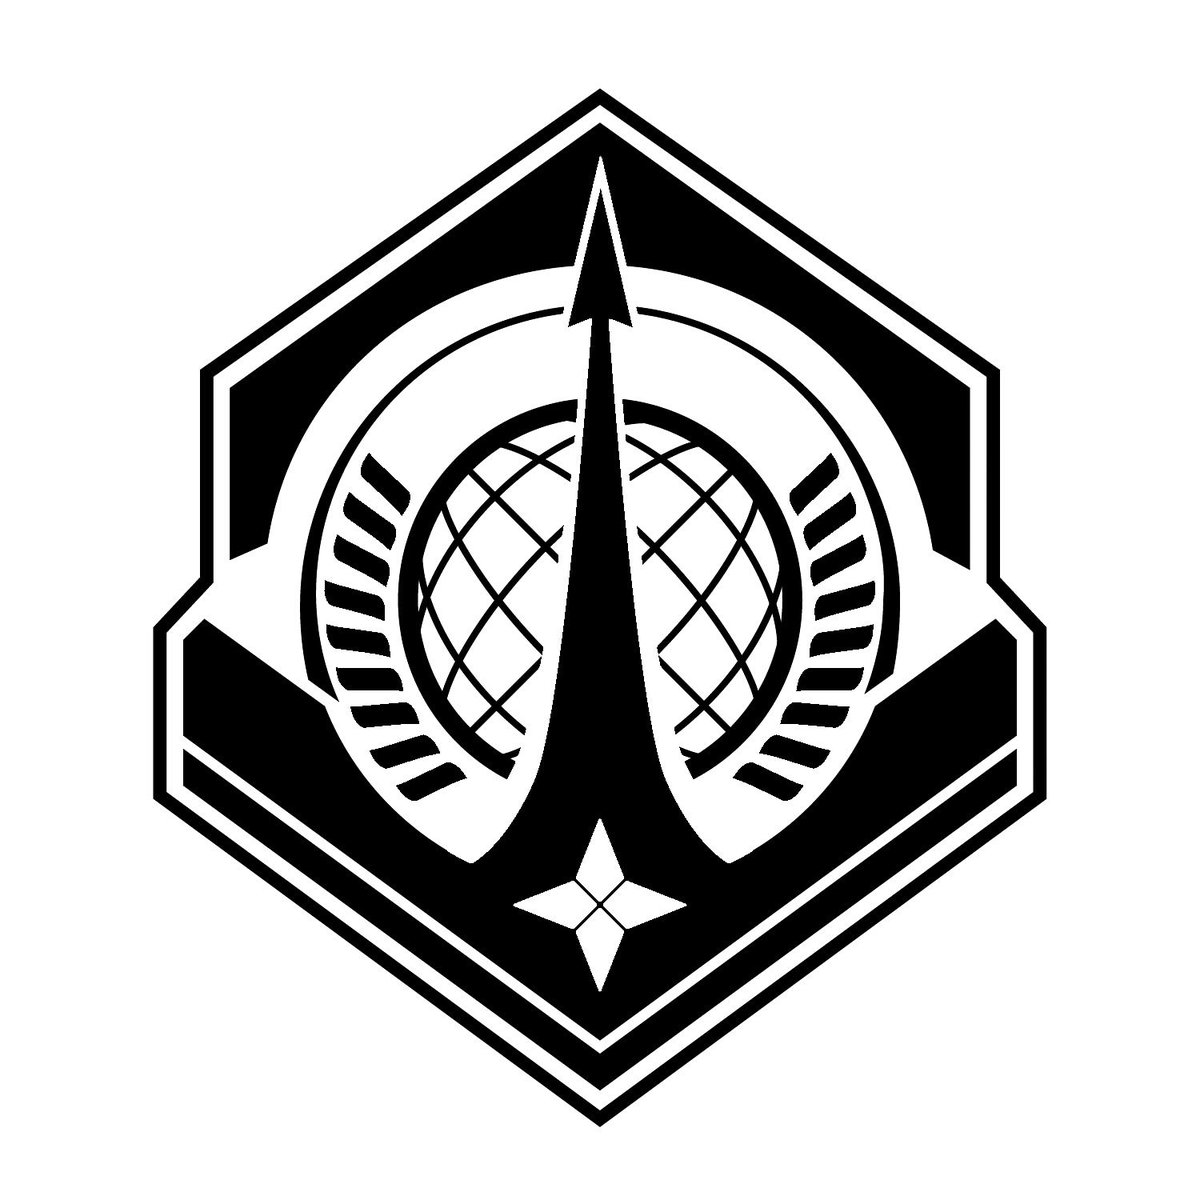 Rebuilt the #Halo #Navy symbol from scratch, I think I did